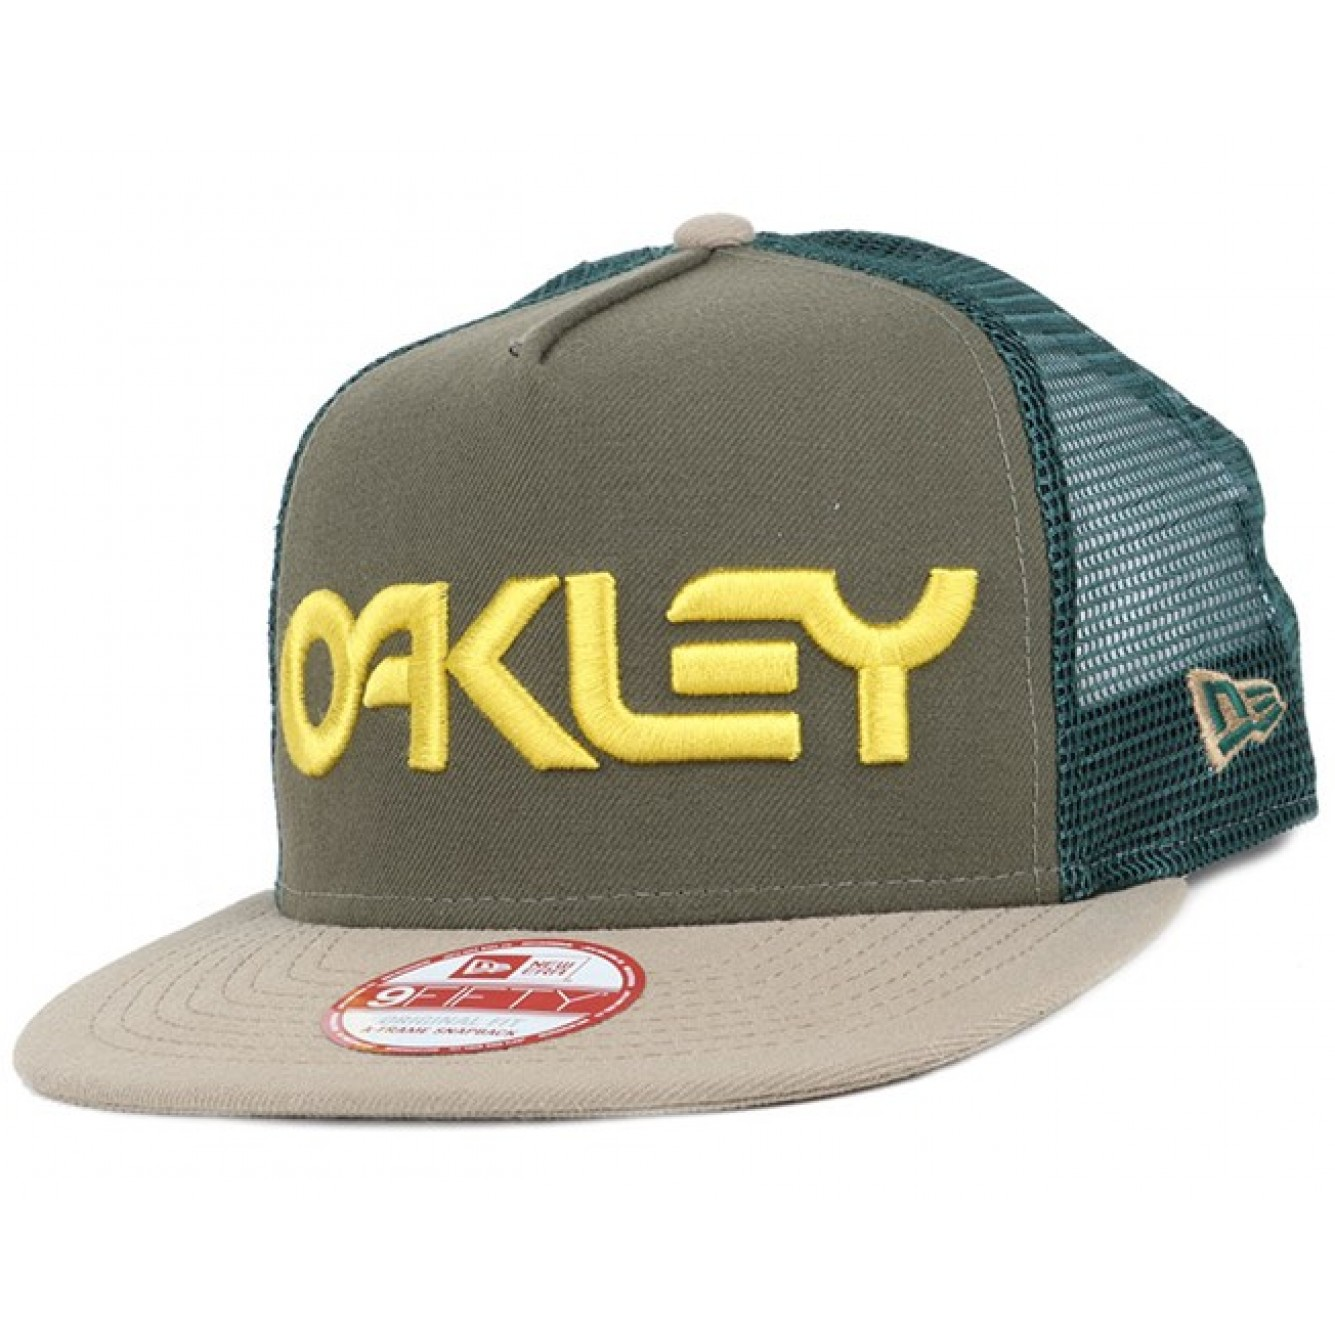 cheap oakley factory pilot trucker mesh snapback dark brush 33197 56d1c caf0e0581f5